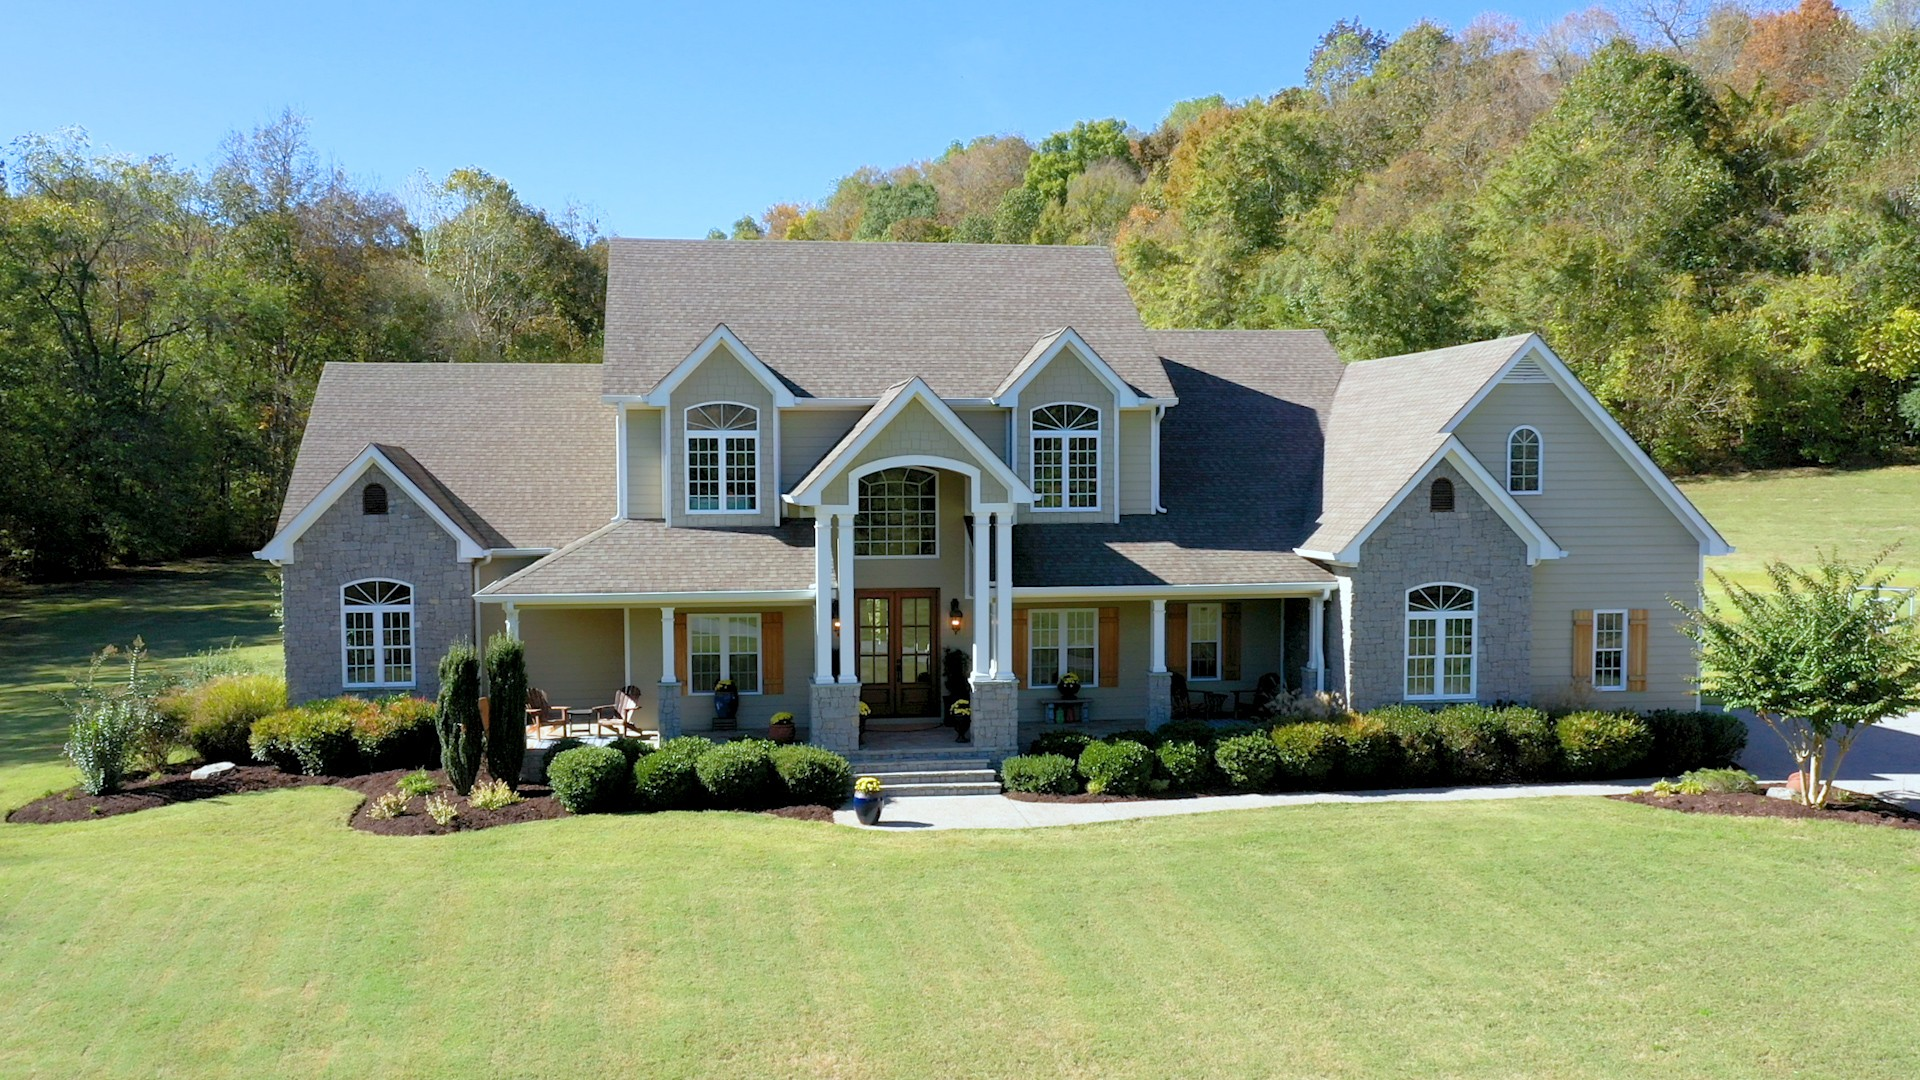 1669 Grants Rd, Columbia, Tennessee